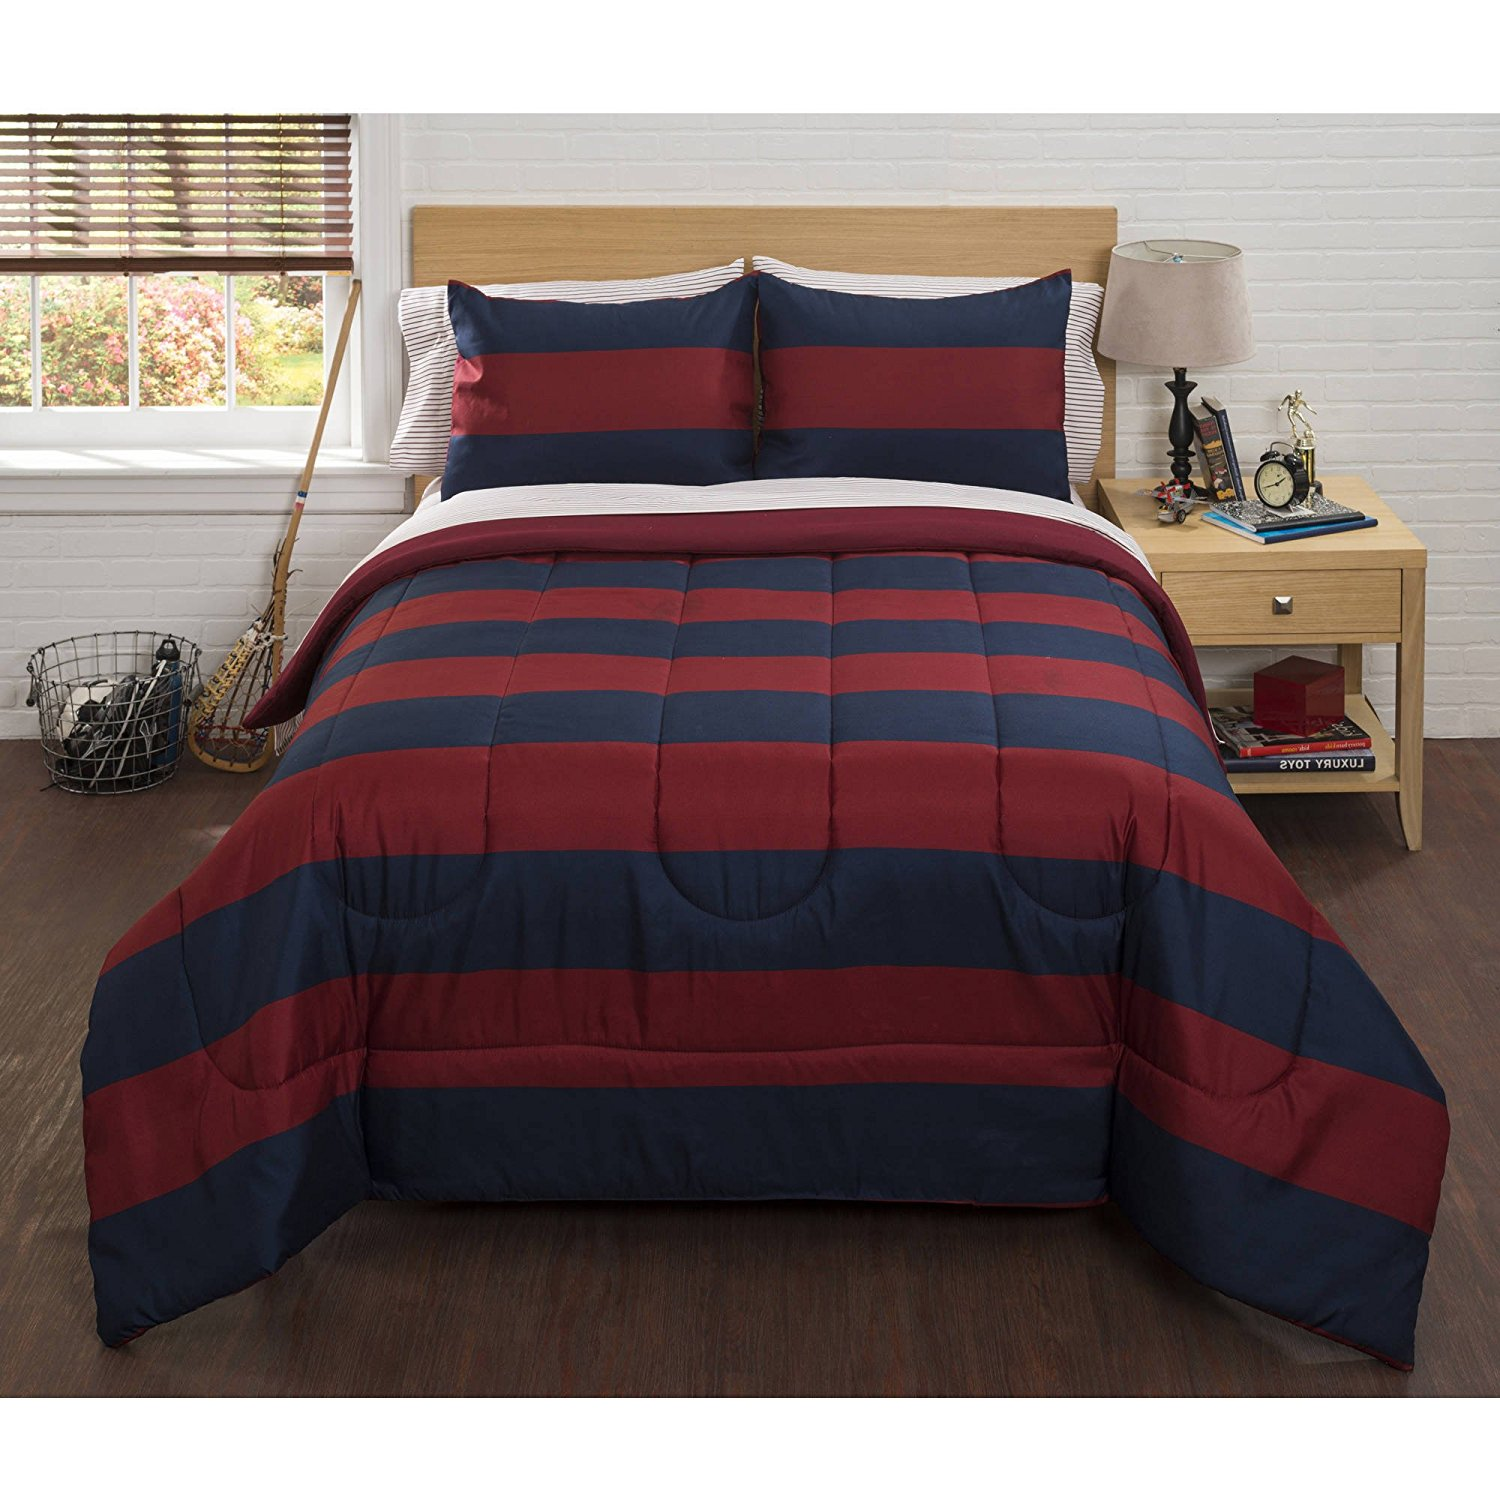 UKN 5 Piece Red Navy Boys Rugby Stripes Pattern Twin Comforter Set with Sheets, Beautiful Sports Striped Nautical Theme, Horizontal Cabana Lines Print Design, Vibrant Navy Blue for Kids, Polyester